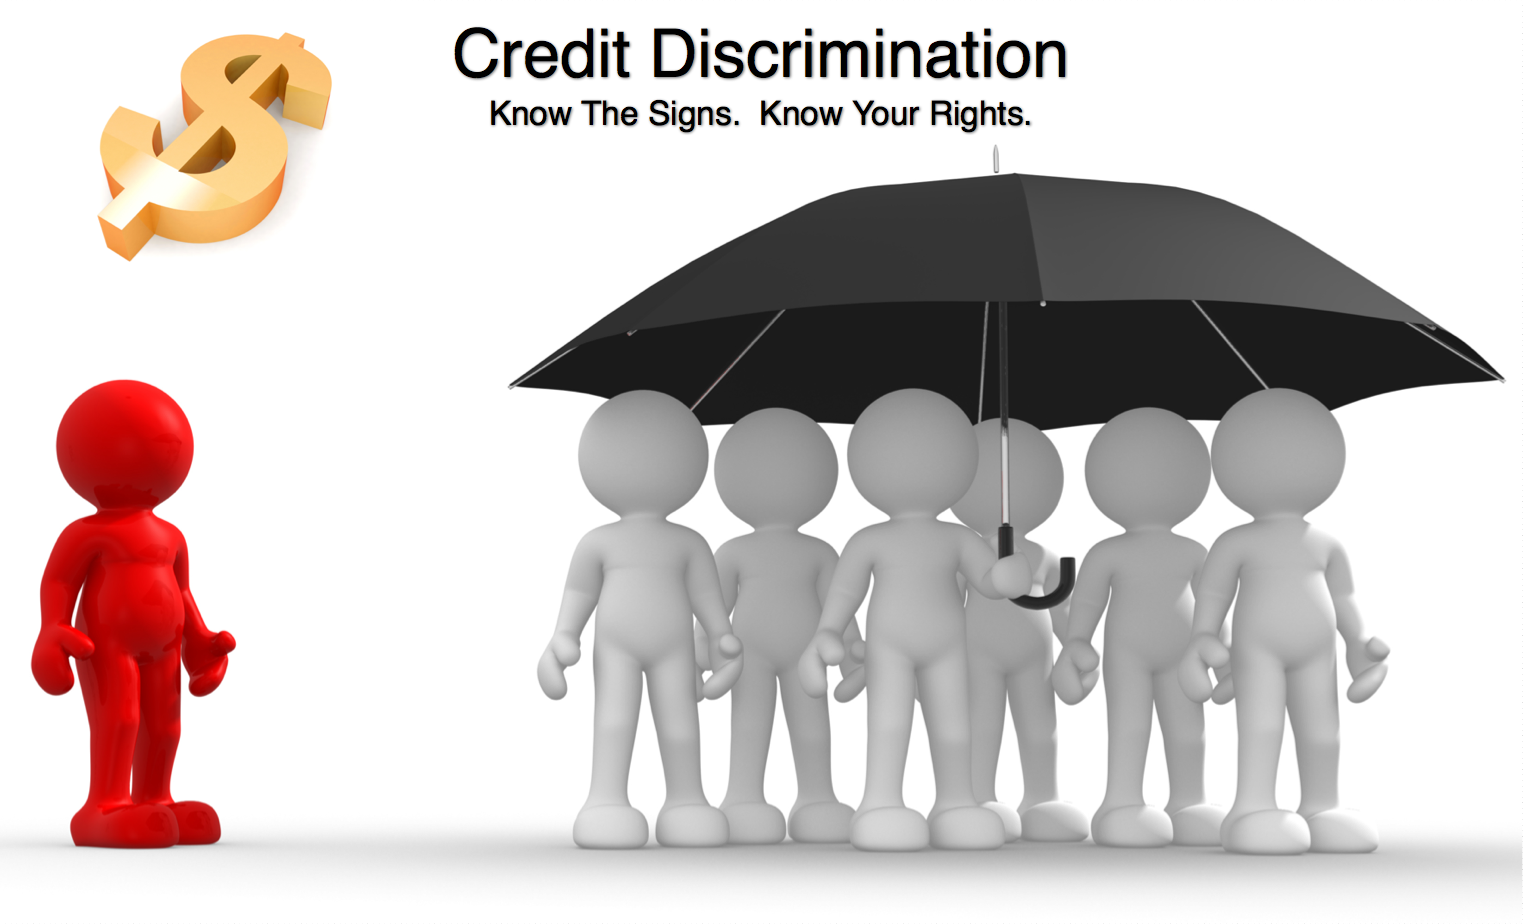 Credit Discrimination